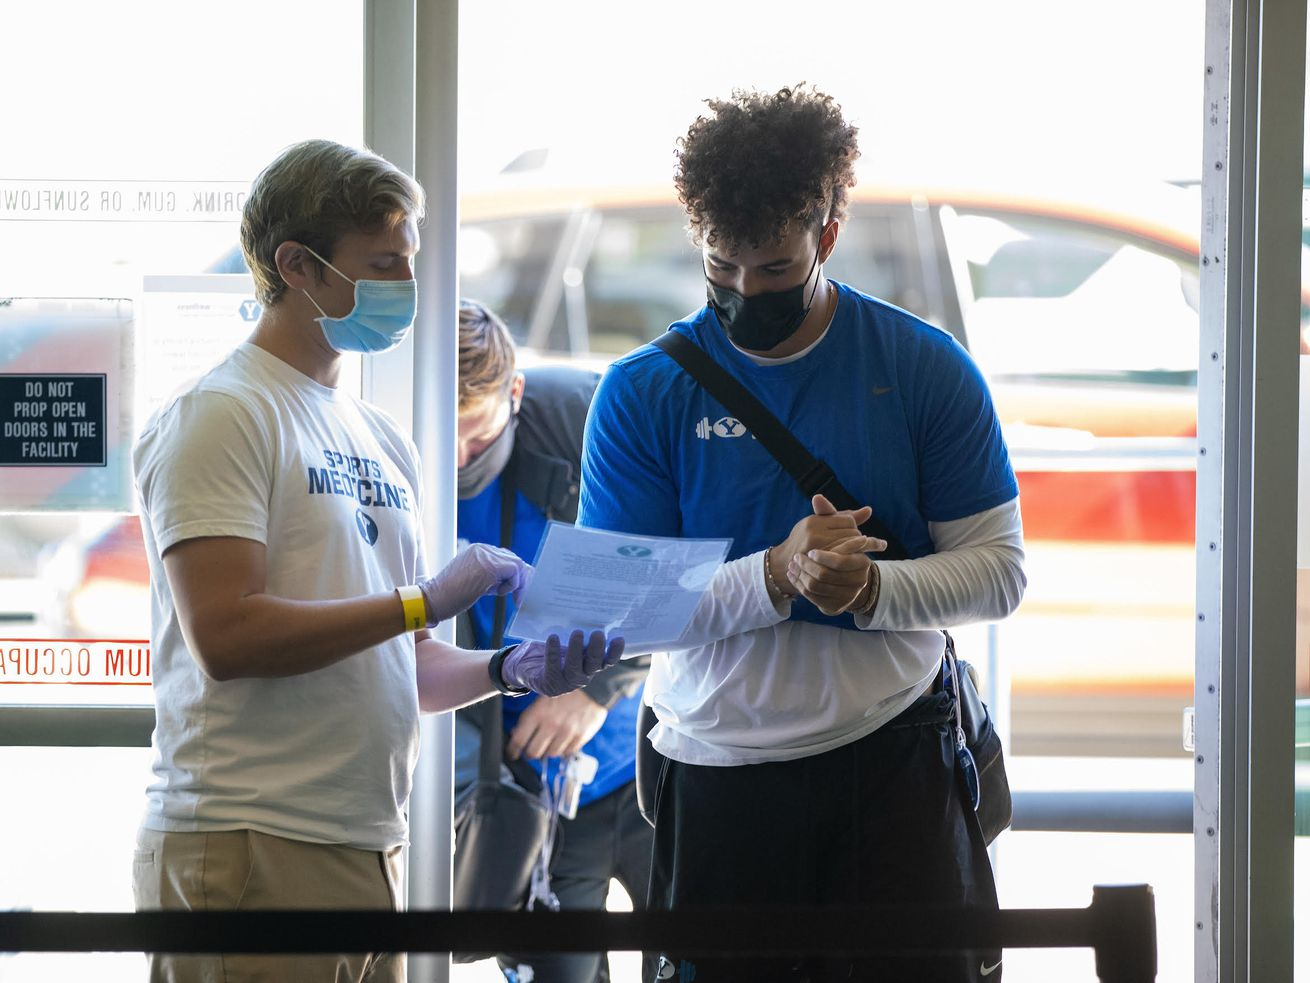 'It is really quite simple' — BYU football players describe screening process for COVID-19